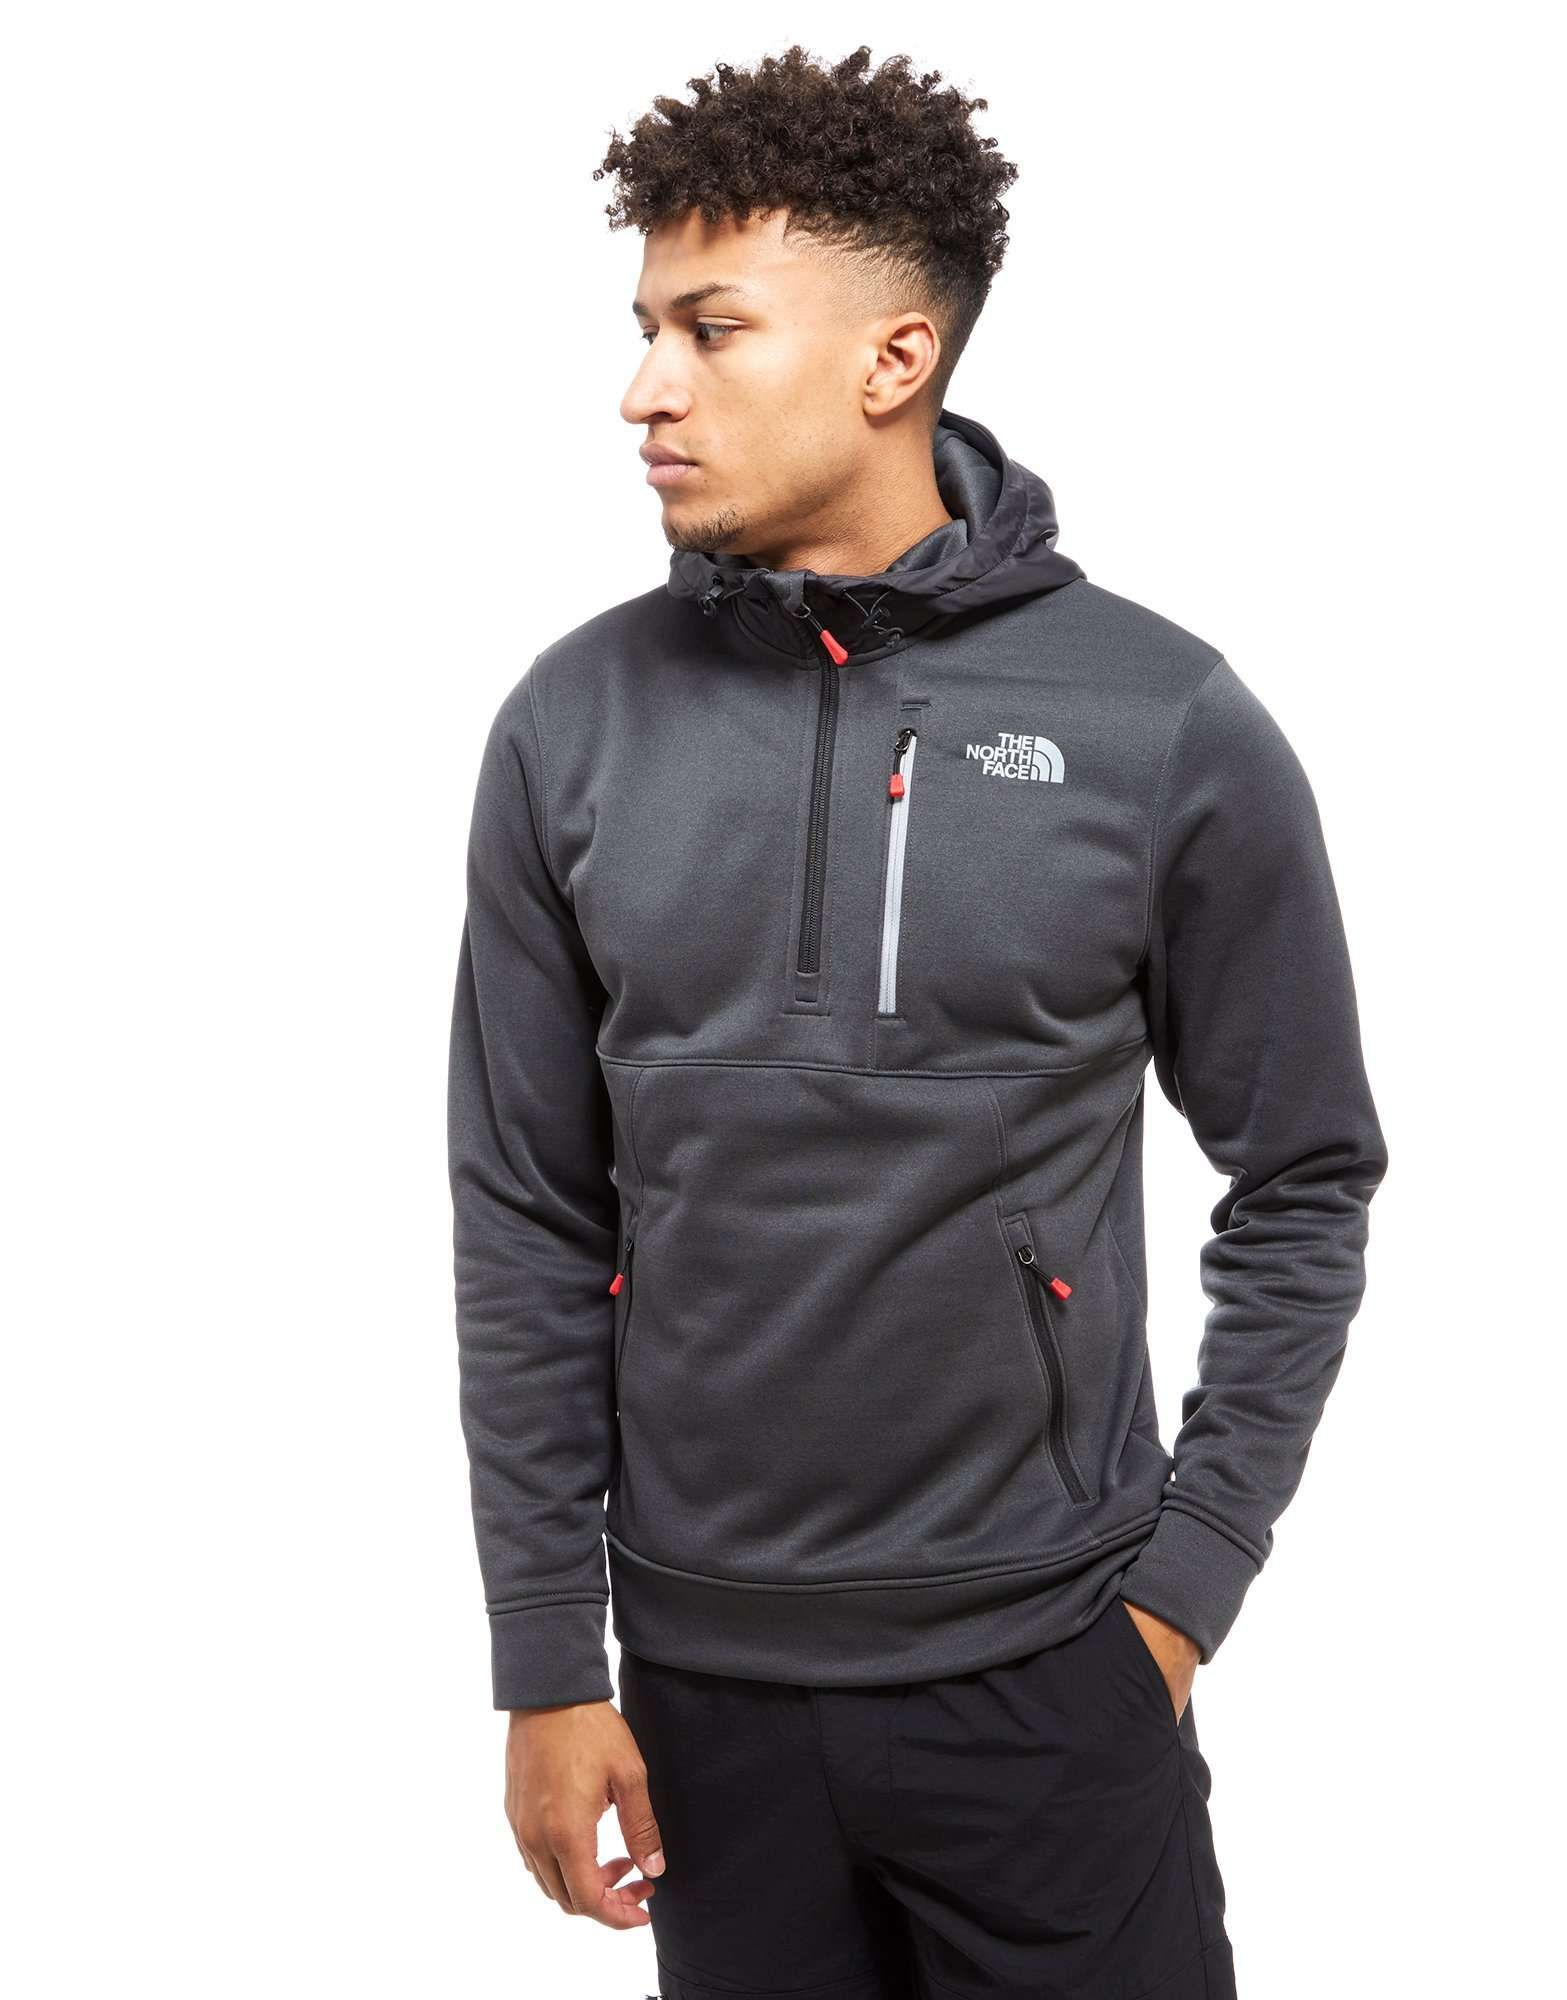 The North Face Mittelegi 1 4 Zip Hoodie - Shop online for The North Face 8a71cfead36